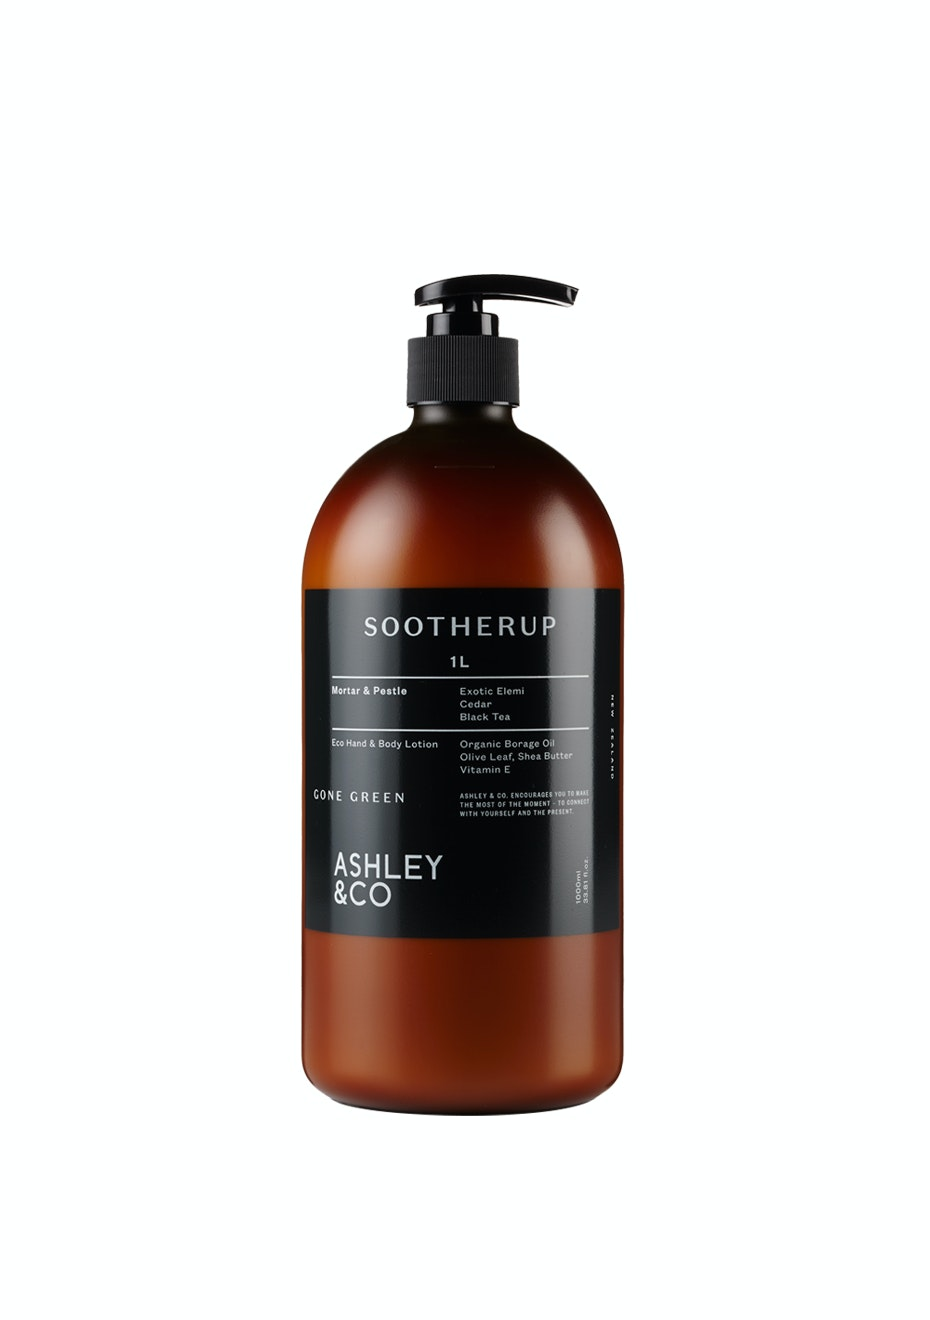 Ashley&Co. SootherUp - Gone Green - 1000ml